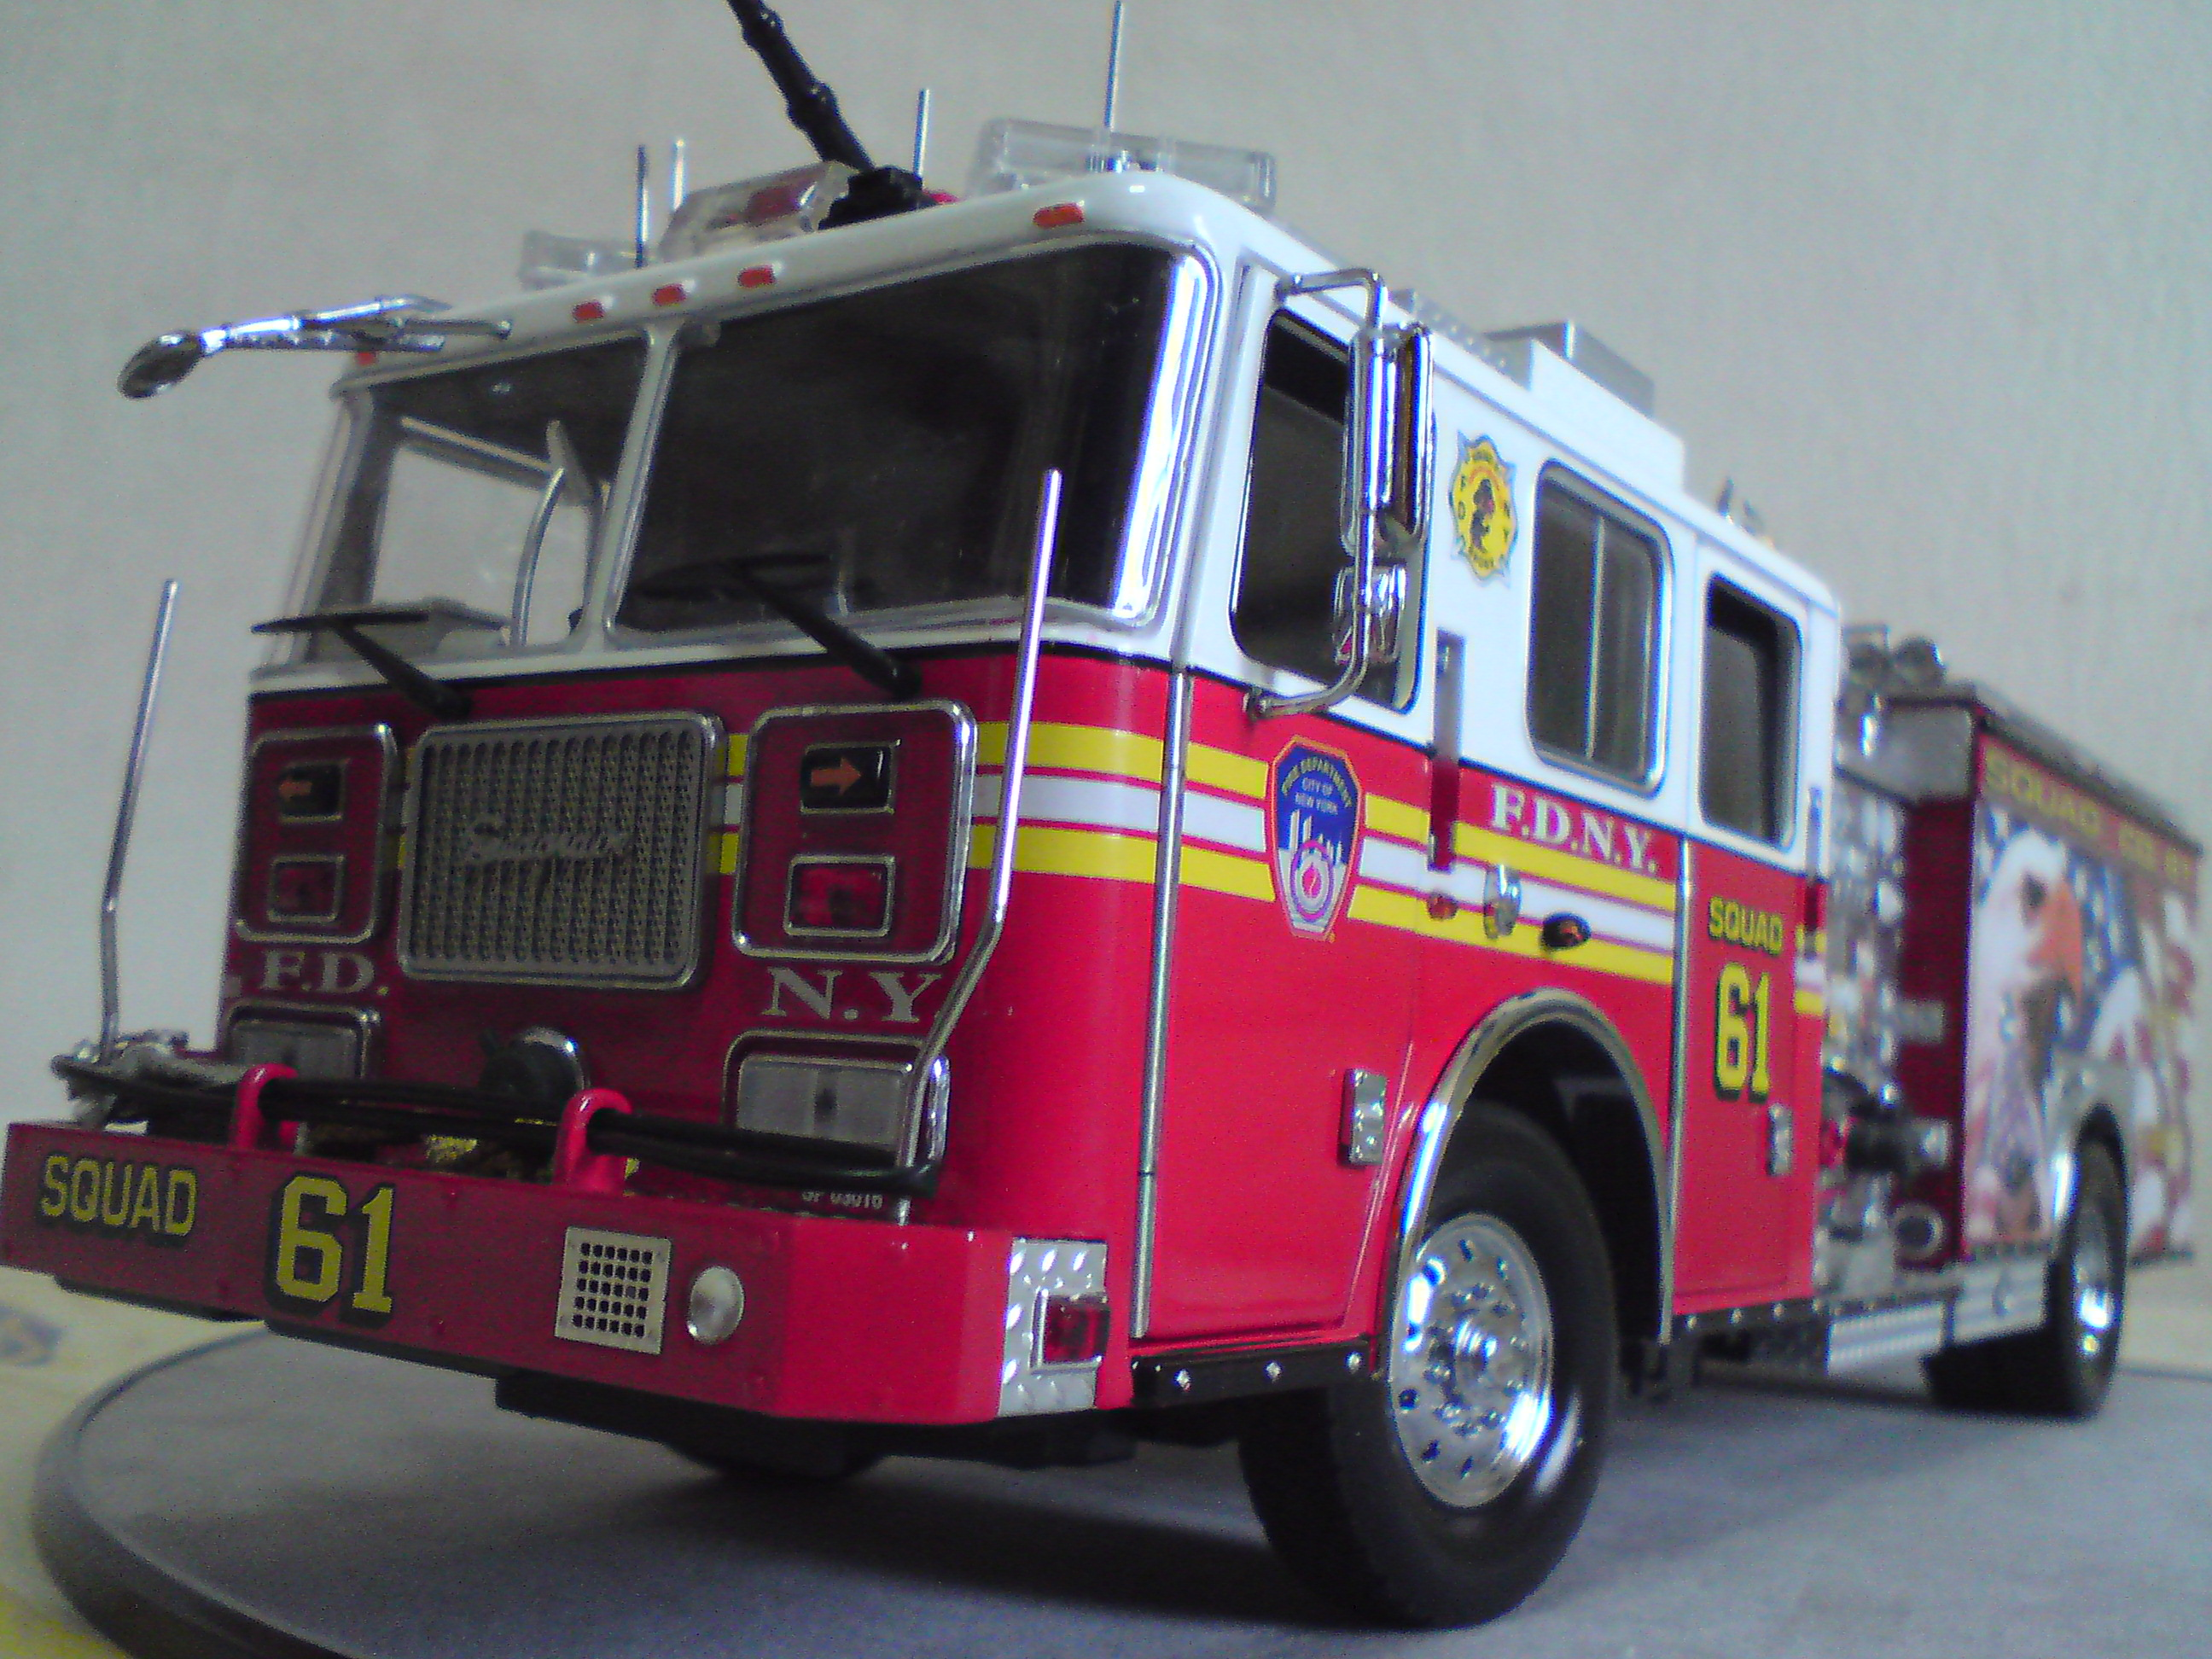 1/32 FDNY SEAGRAVE PUMPER SQUAD 61 | Flickr - Photo Sharing!